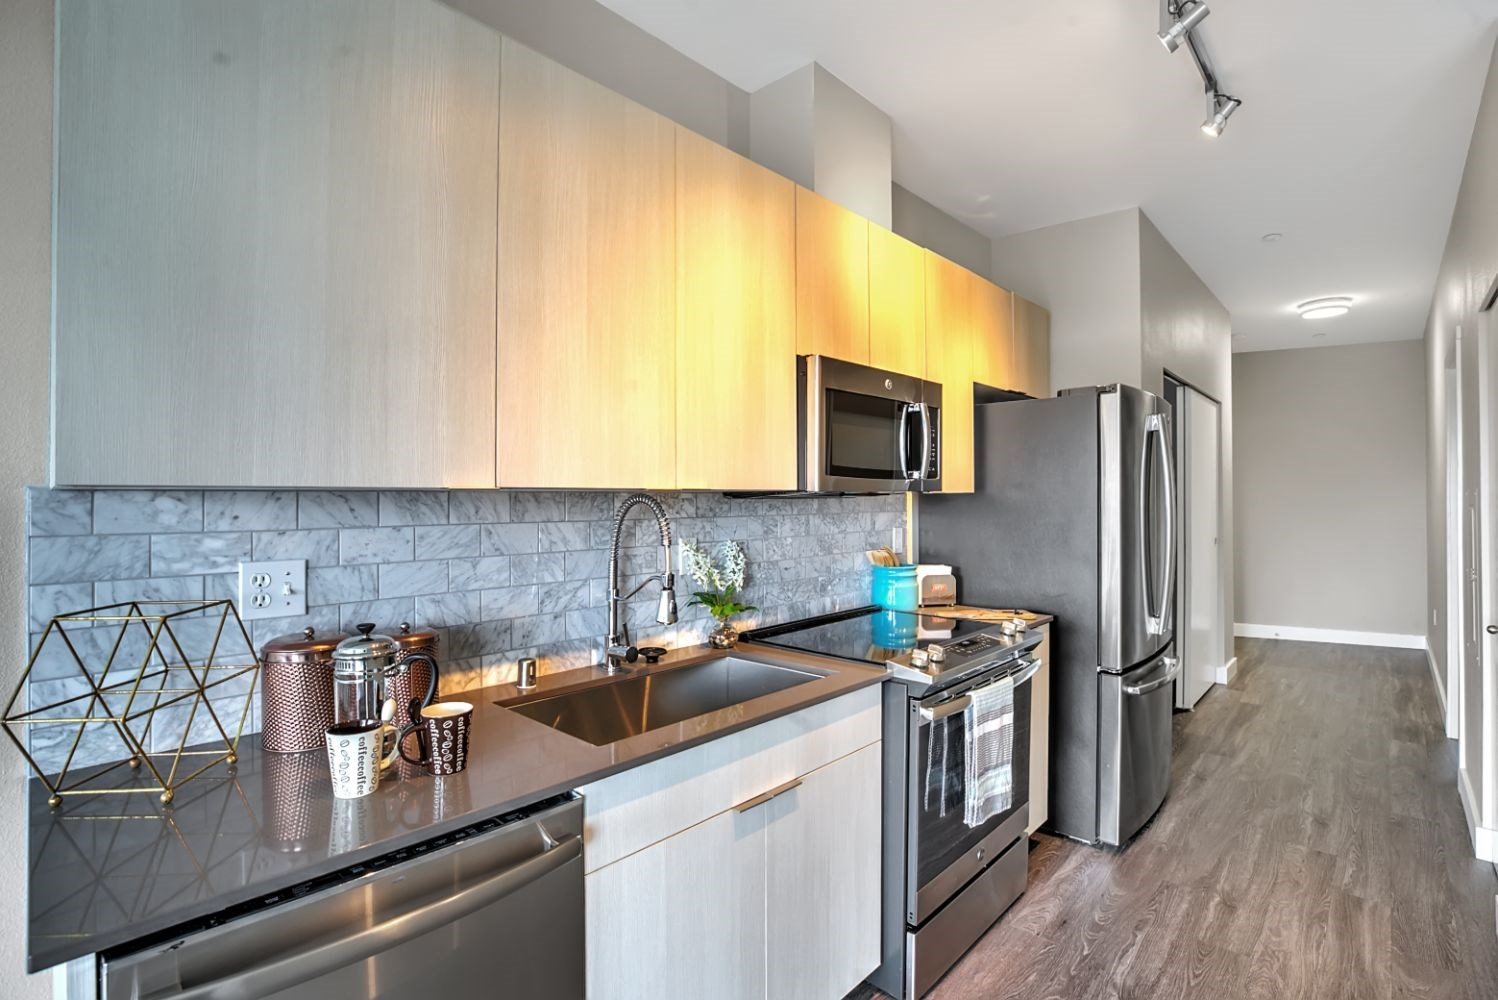 Chef-Inspired Kitchen Design at Mural, Seattle, Washington